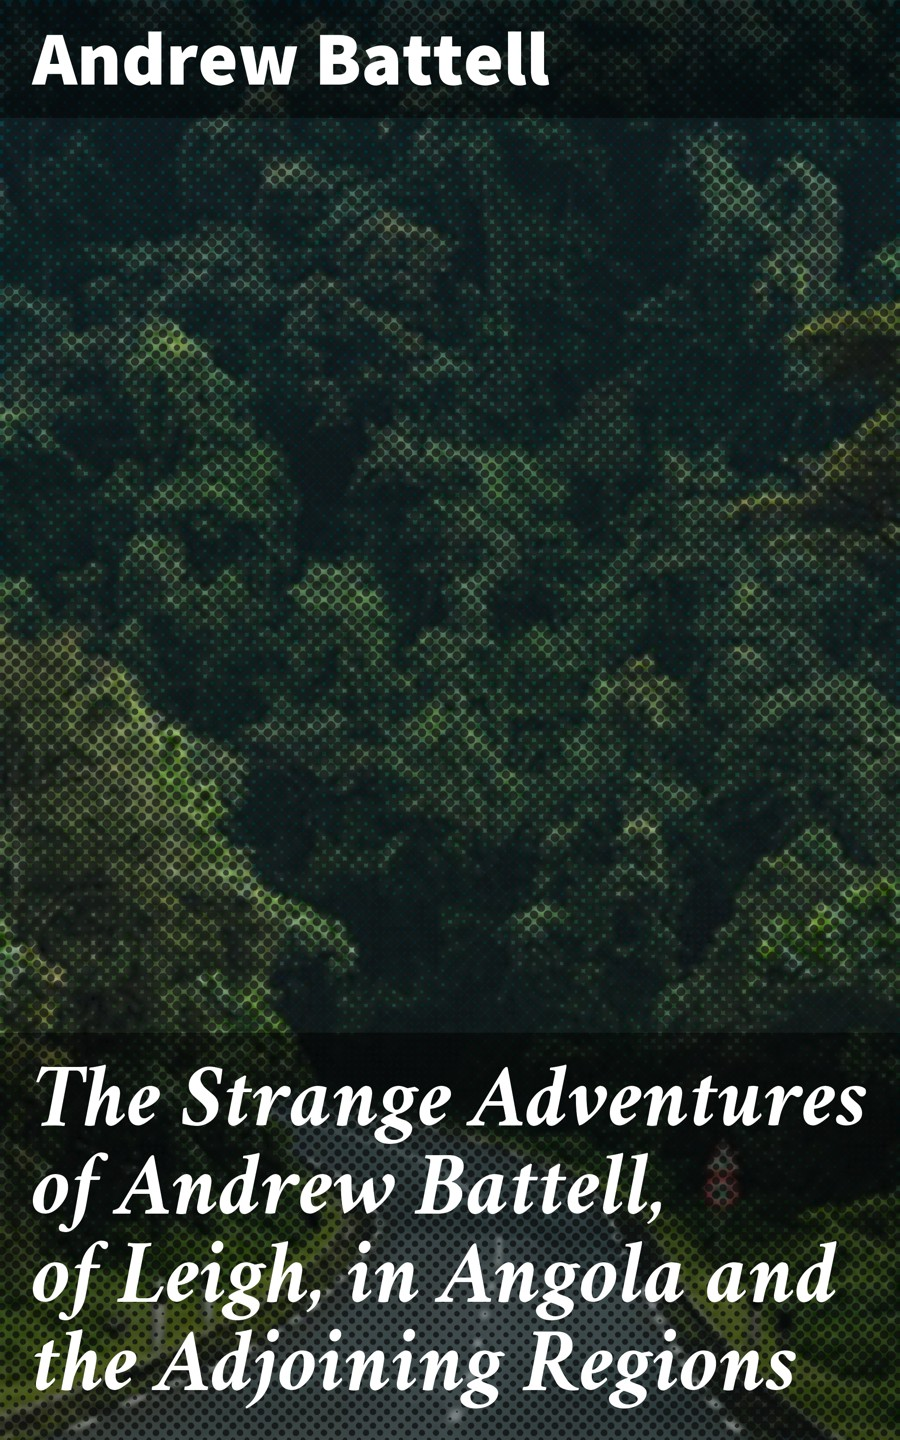 Andrew Battell The Strange Adventures of Andrew Battell, of Leigh, in Angola and the Adjoining Regions hunt leigh the autobiography of leigh hunt with reminiscences of friends and contemporaries volume 1